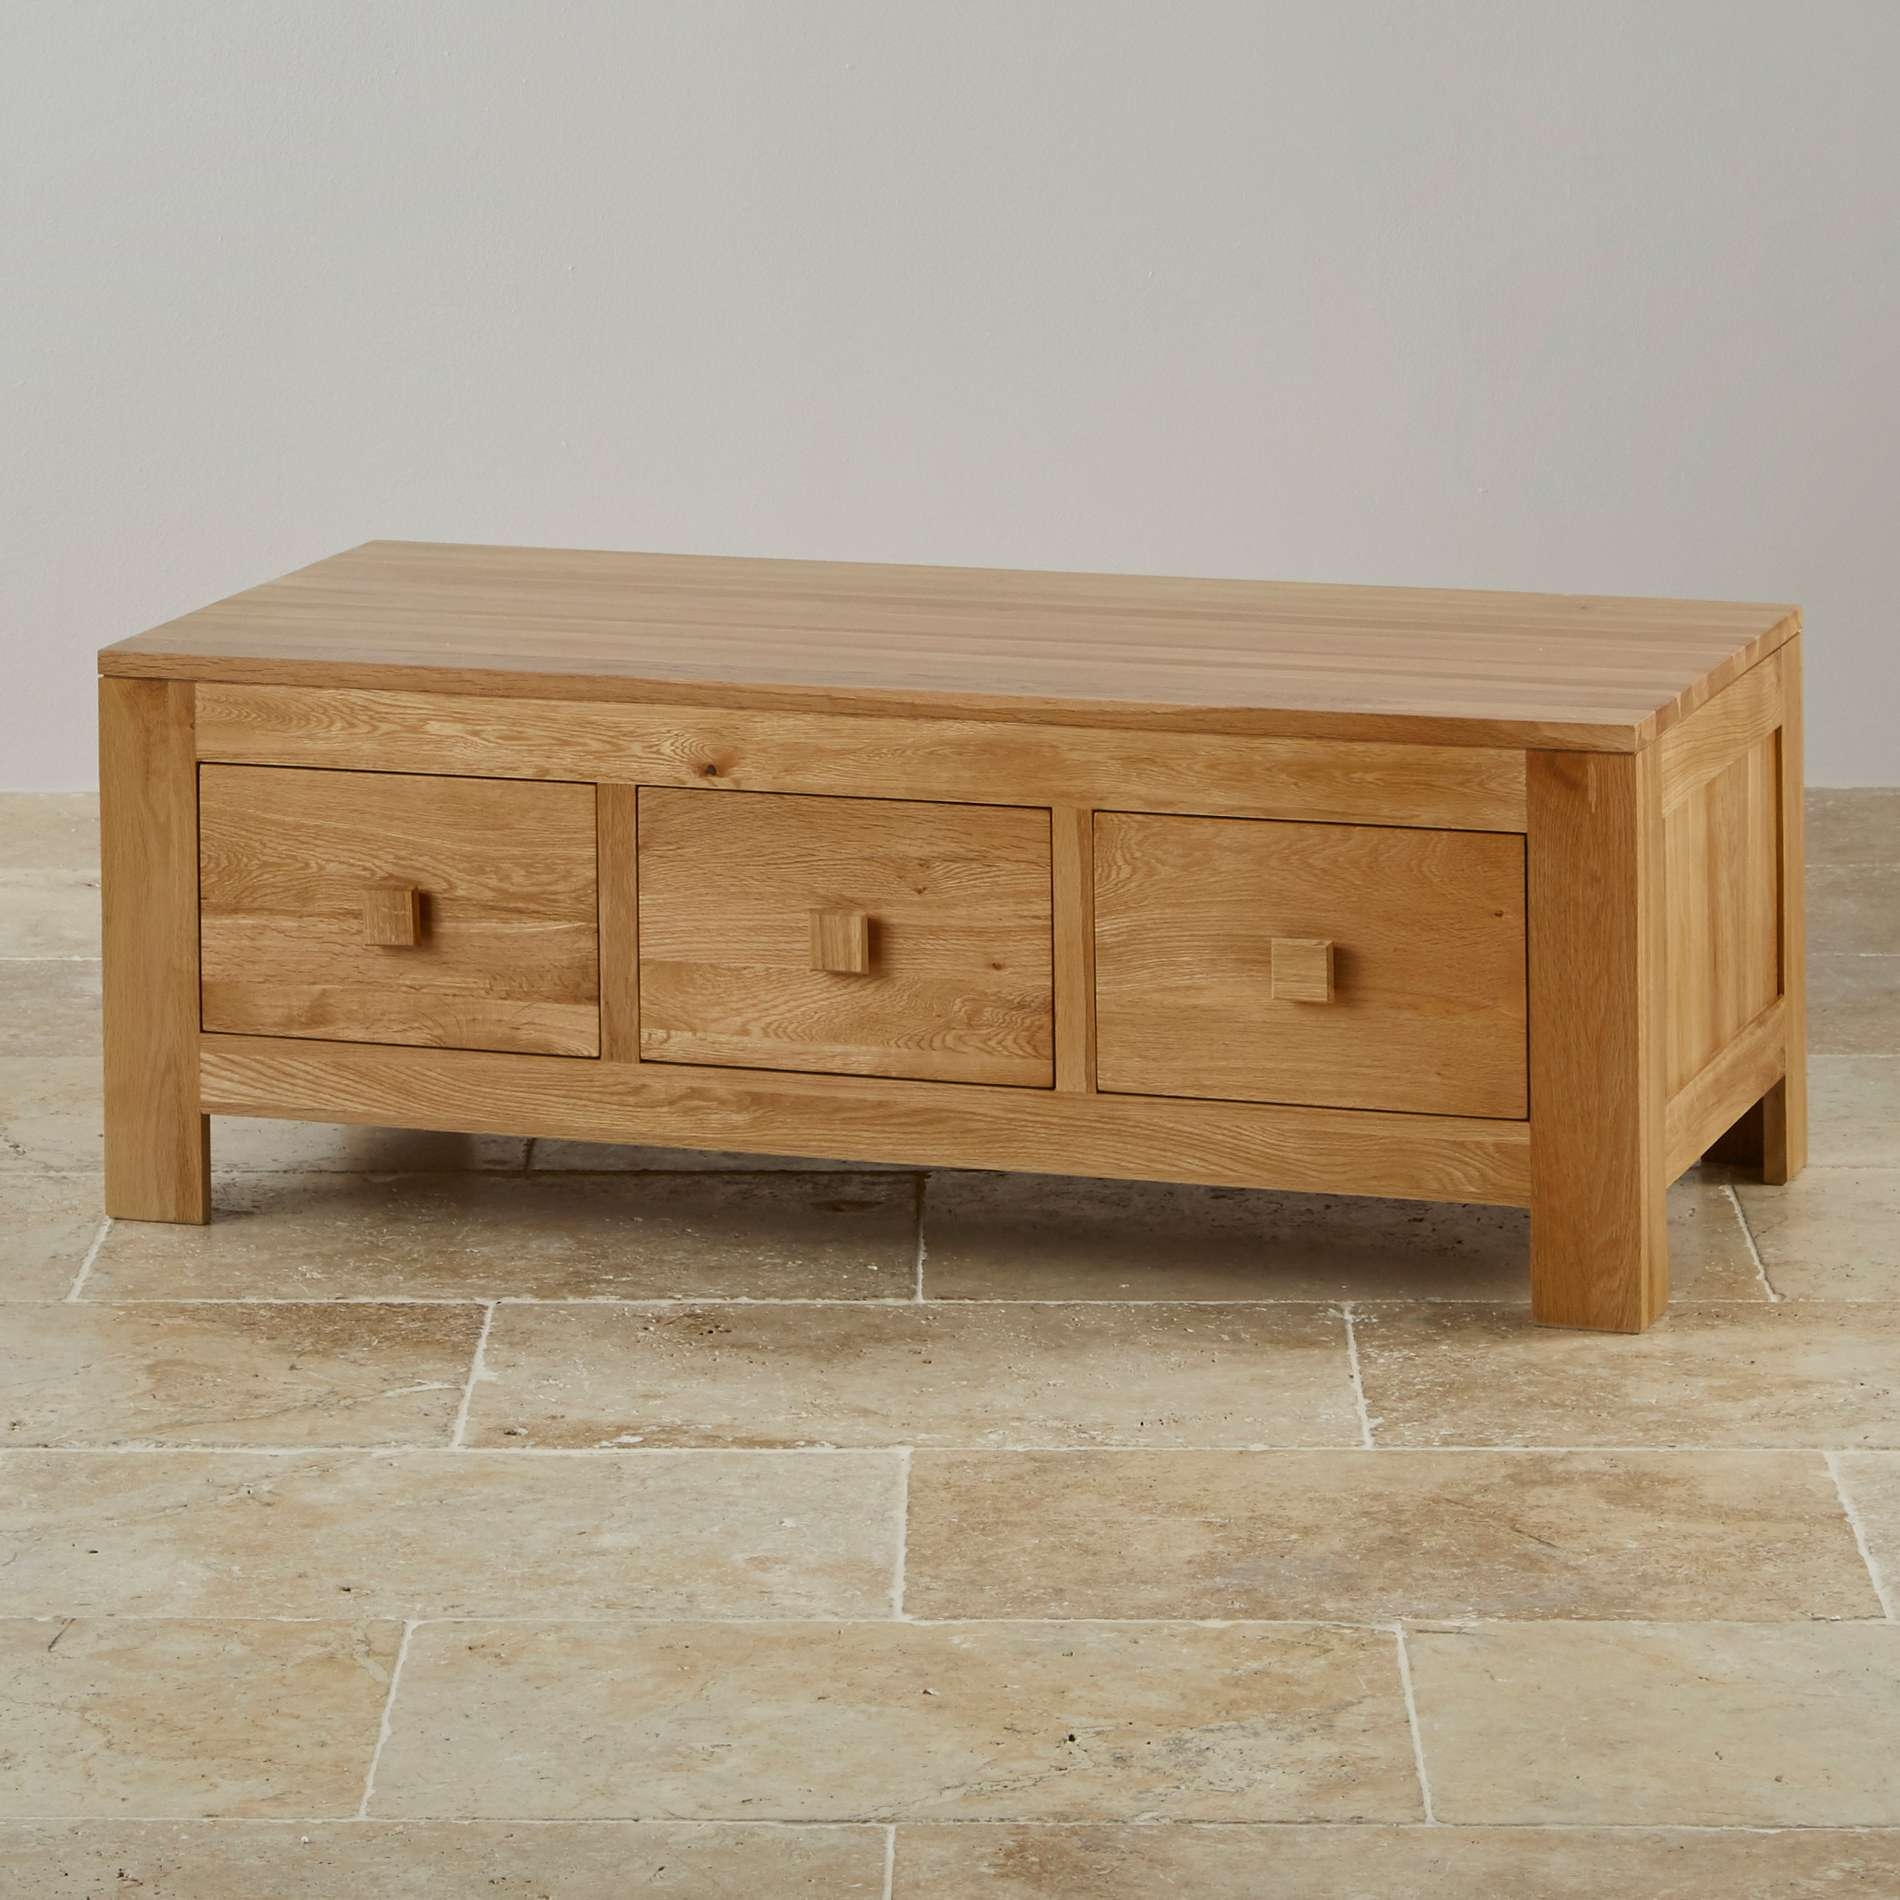 Current Oak Furniture Coffee Tables Regarding Coffee Table : Wonderful Oak Coffee Table Dining Table And Chairs (View 4 of 20)